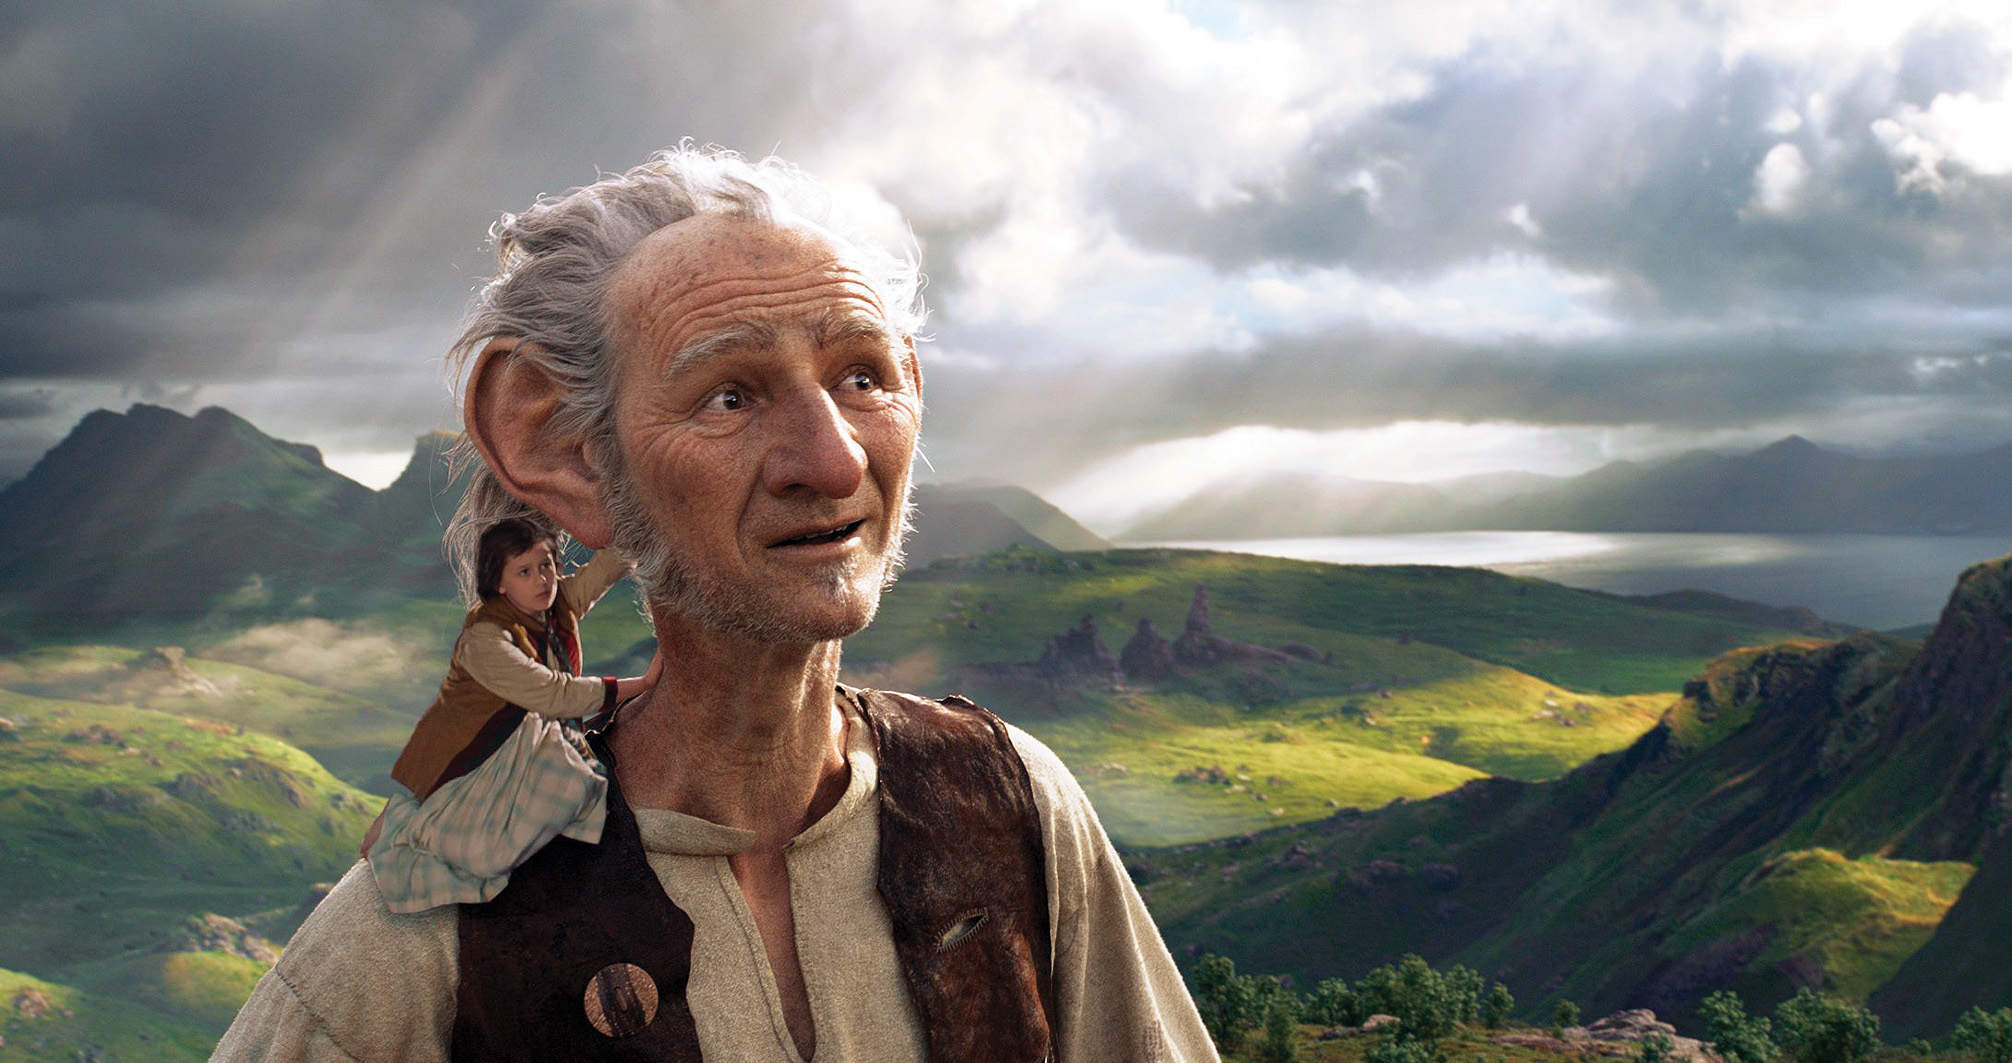 Mark Rylance and Ruby Barnhill shine in The BFG – but the film never quite takes off